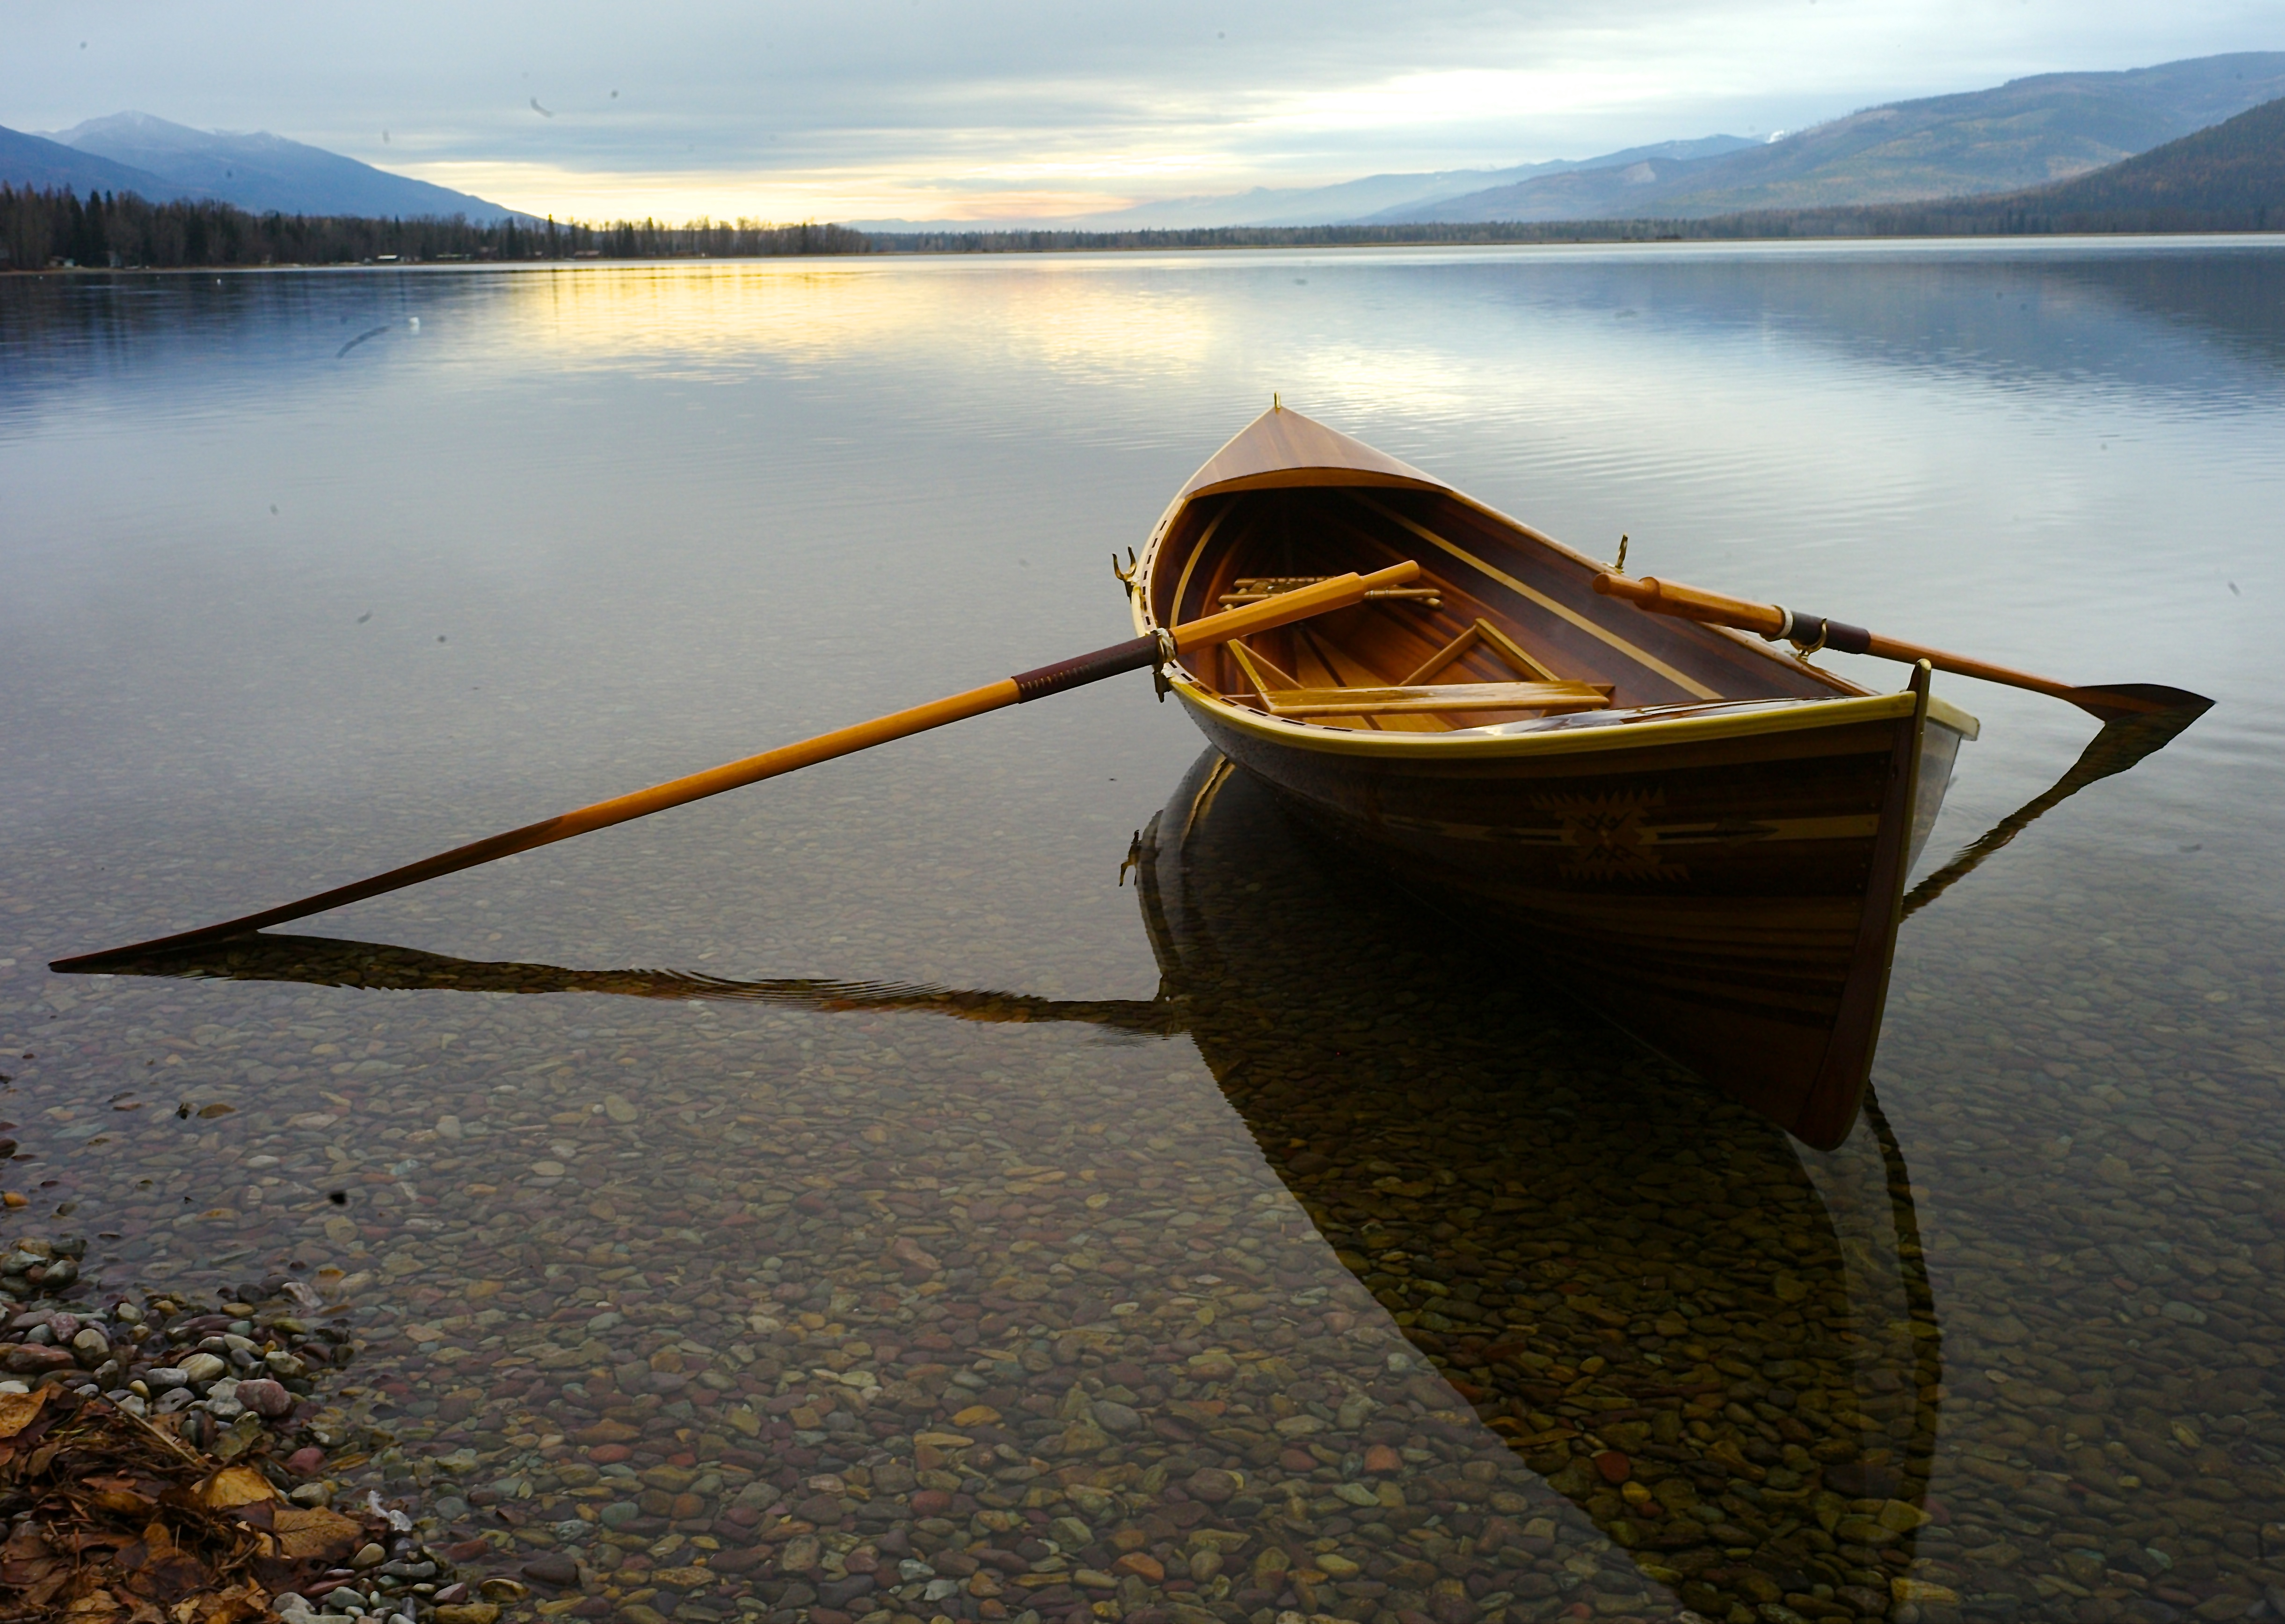 CANOE AND OARS AT THE SHORE OF A LAKE